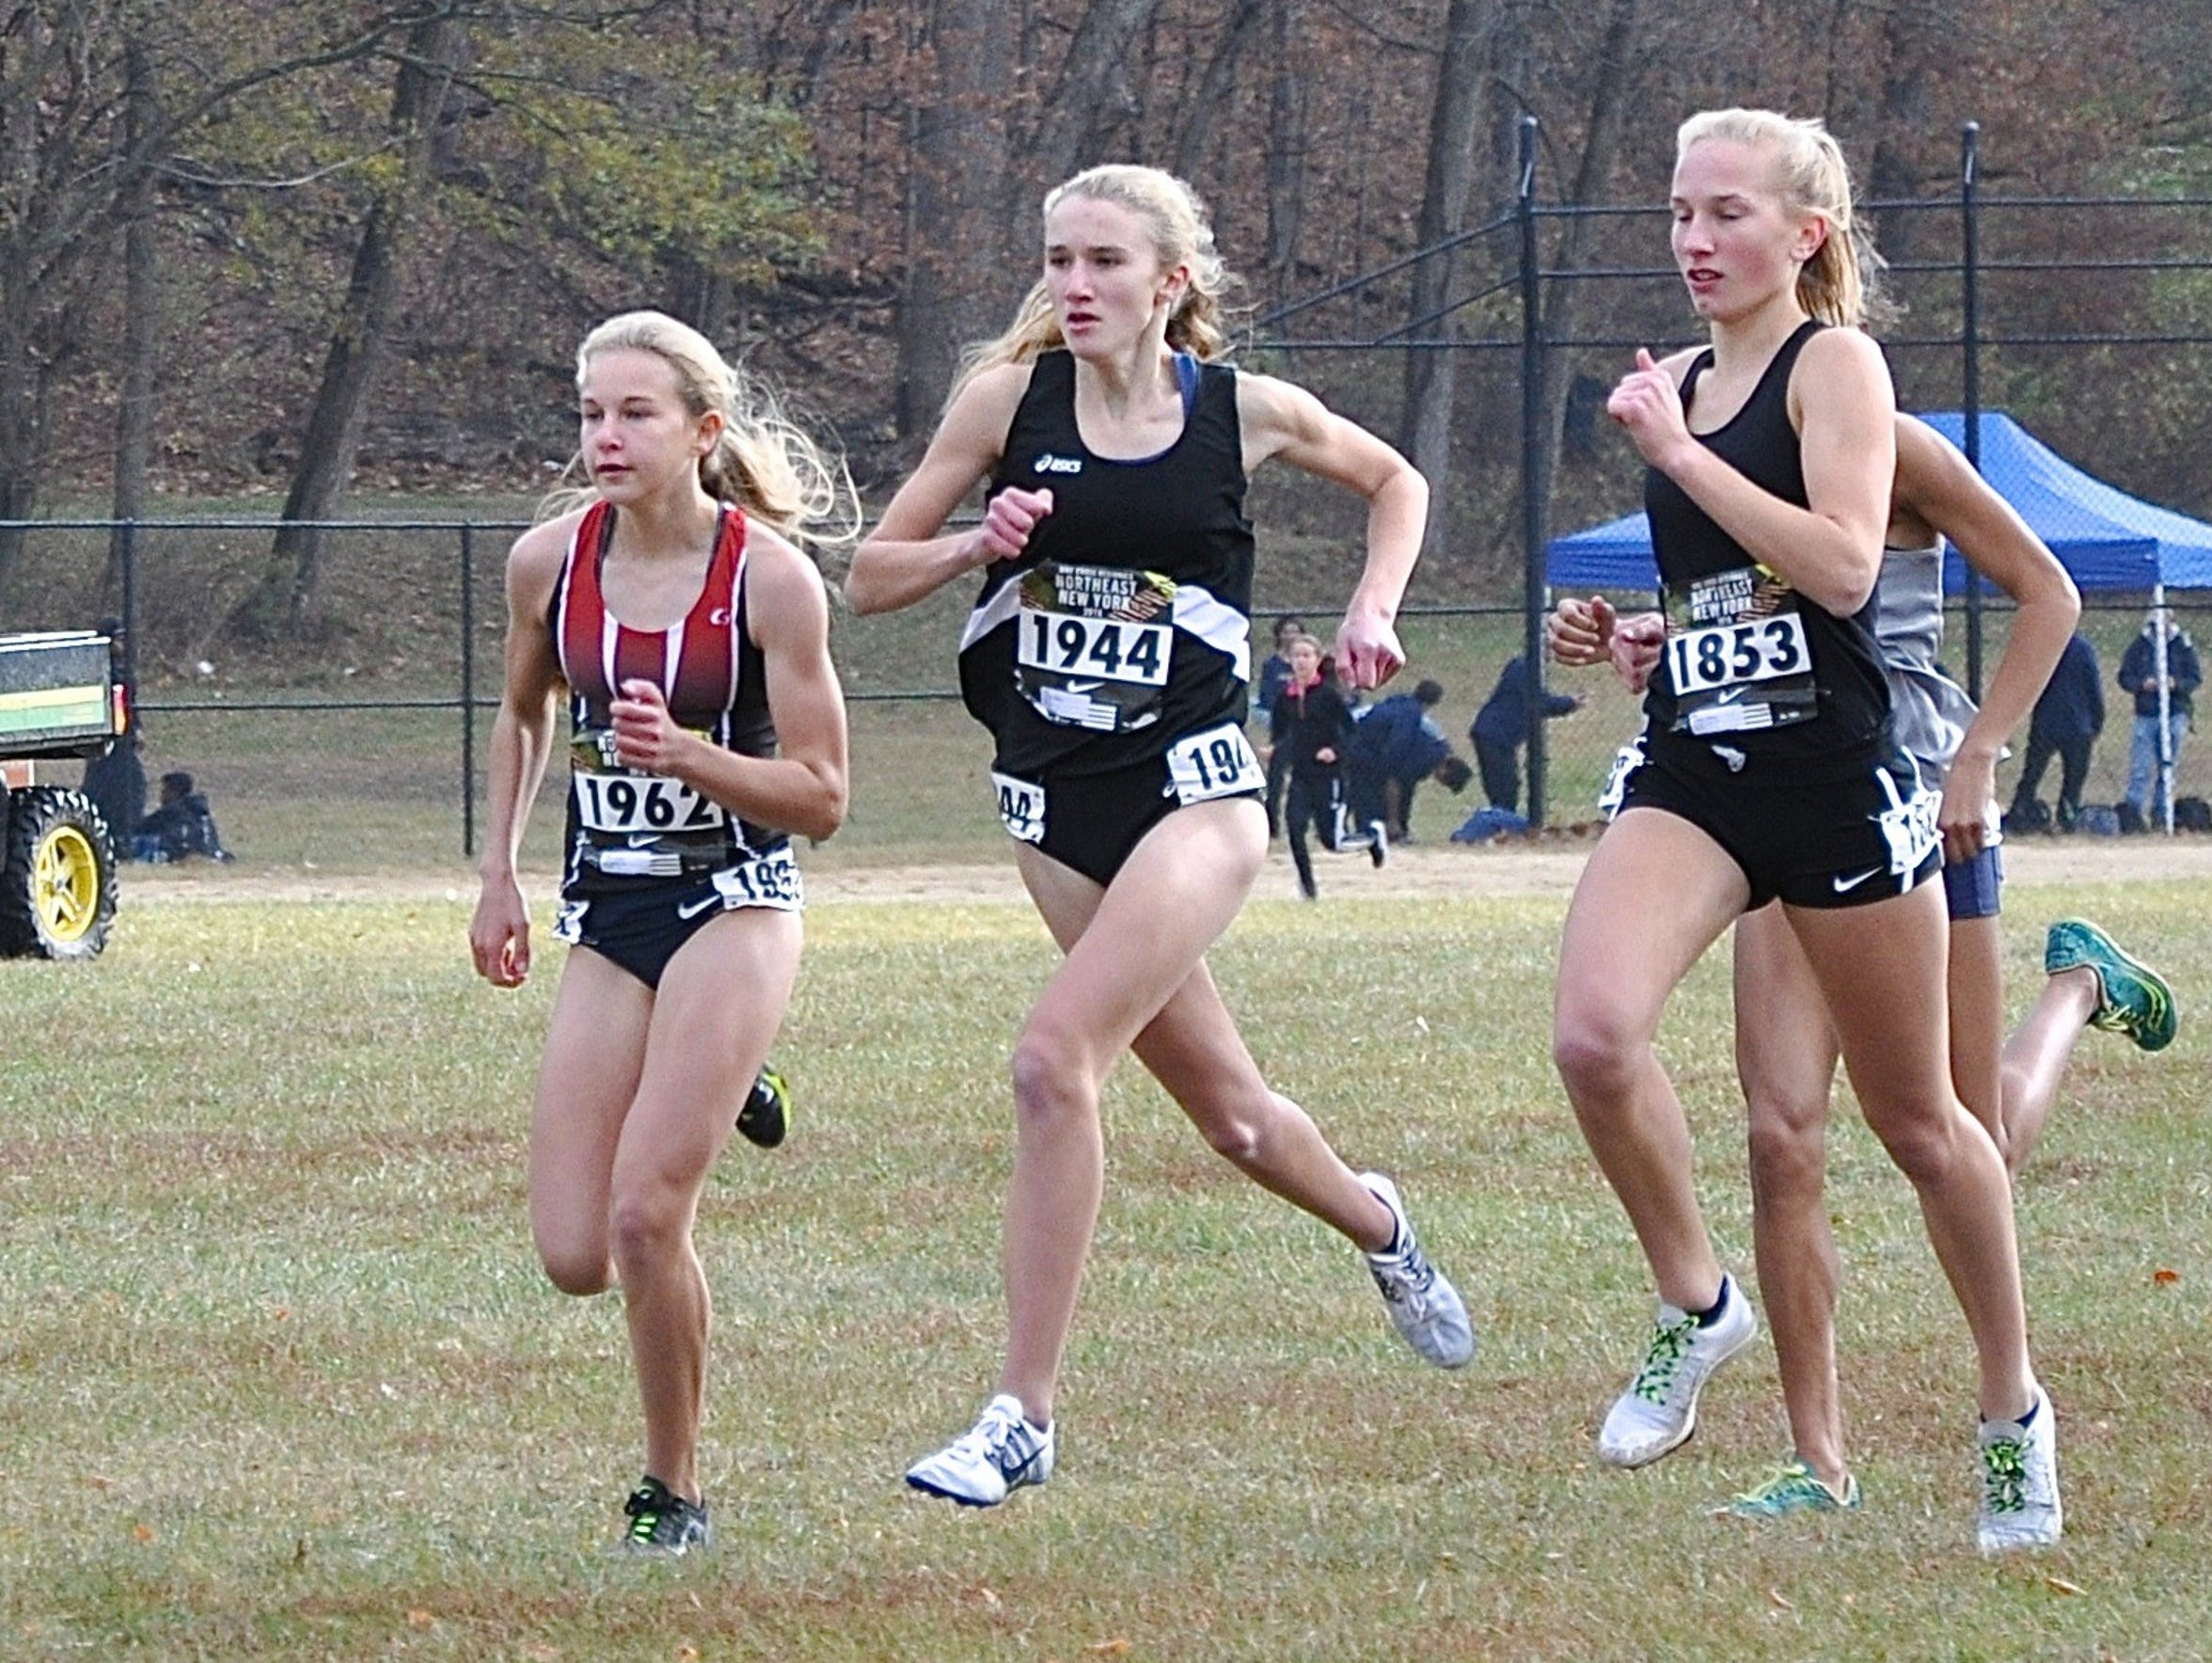 North Rockland's Katelyn Tuohy (l) leads last year's